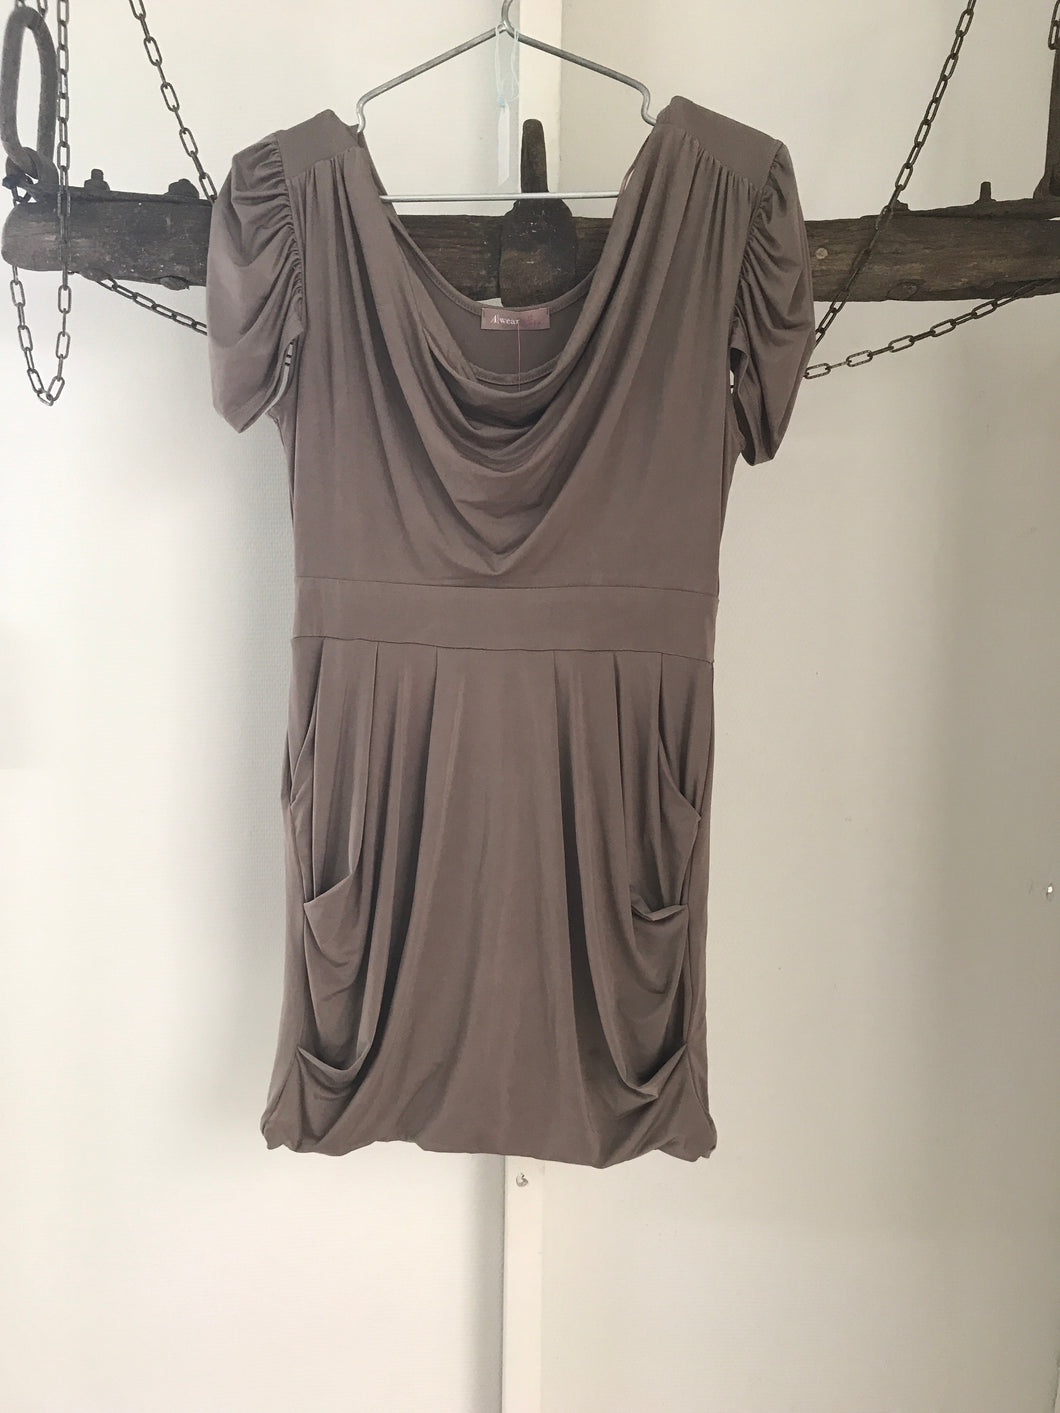 A Wear Bronze Dress Size 10 NWT